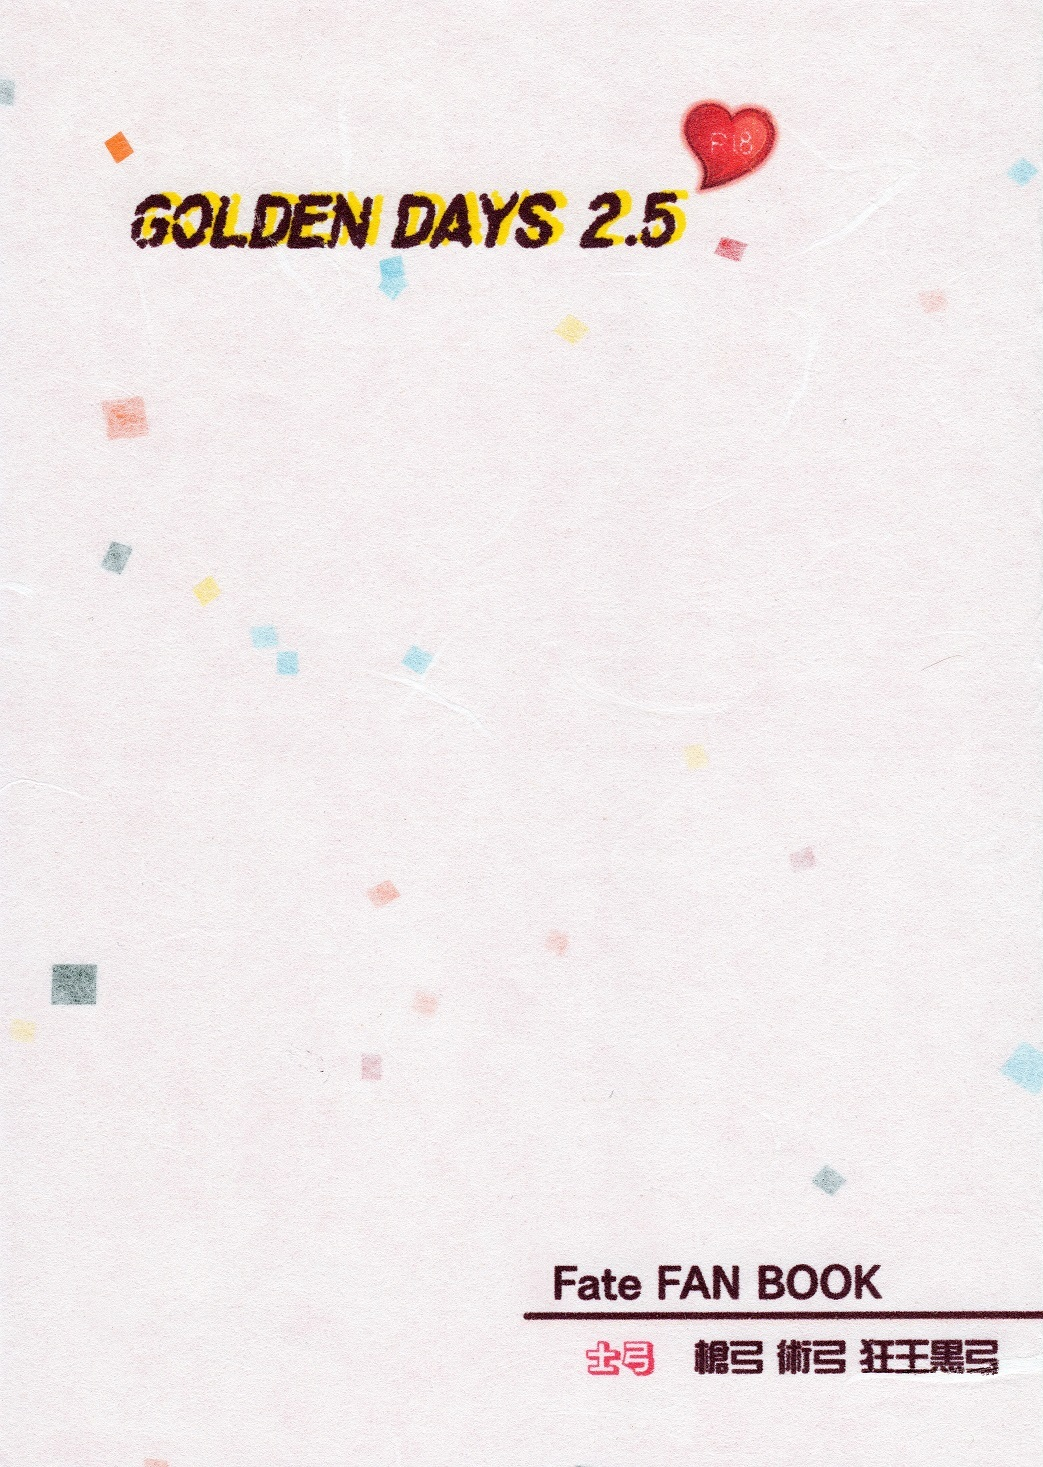 GOLDEN DAYSコピー